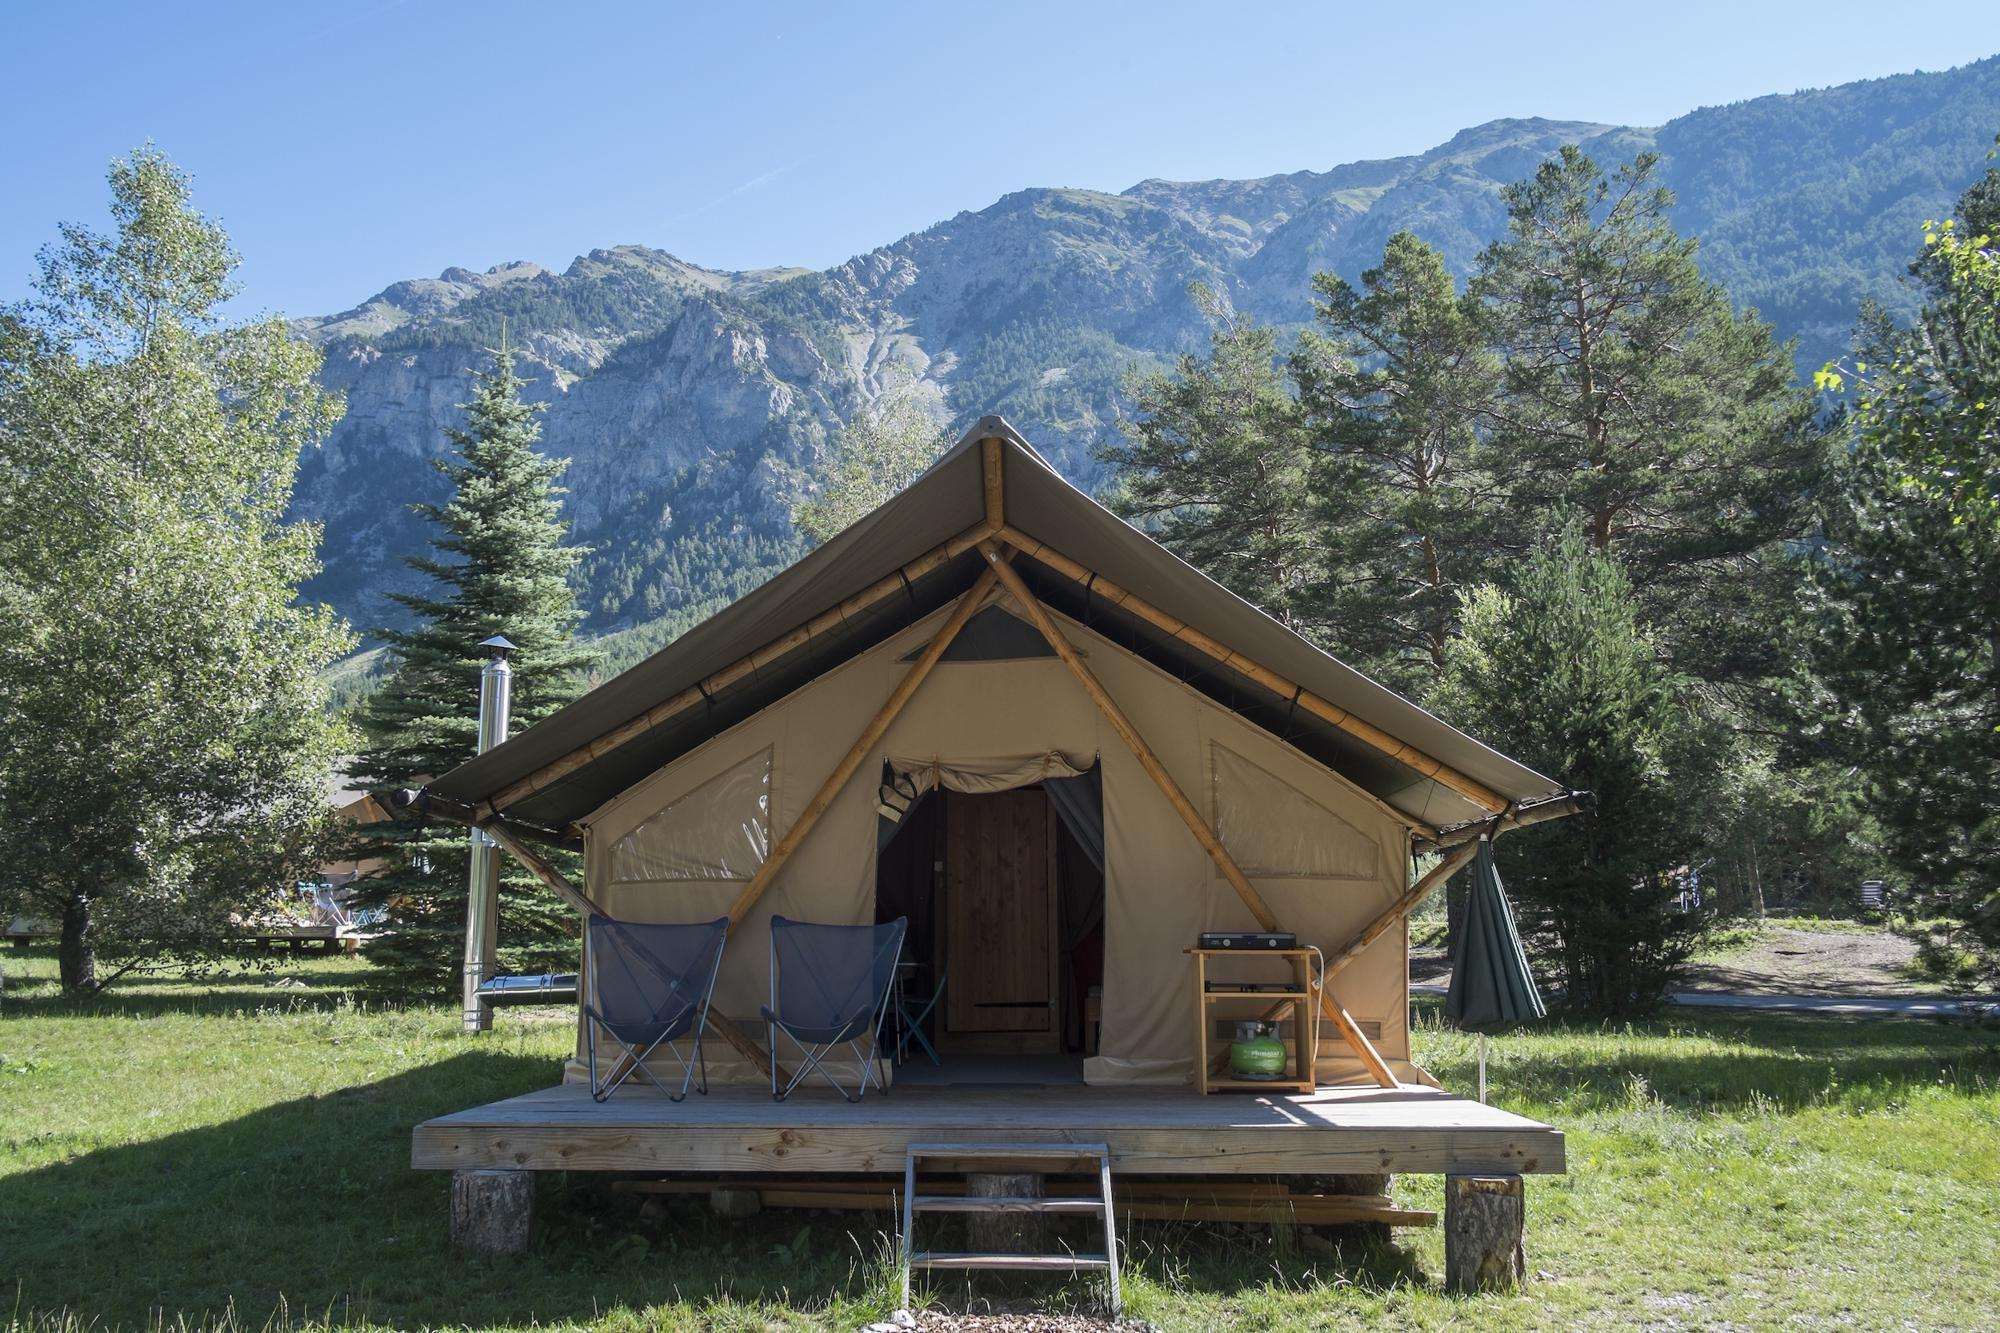 Glamping in Hautes-Alpes | Glamping accommodation in Hautes-Alpes, France